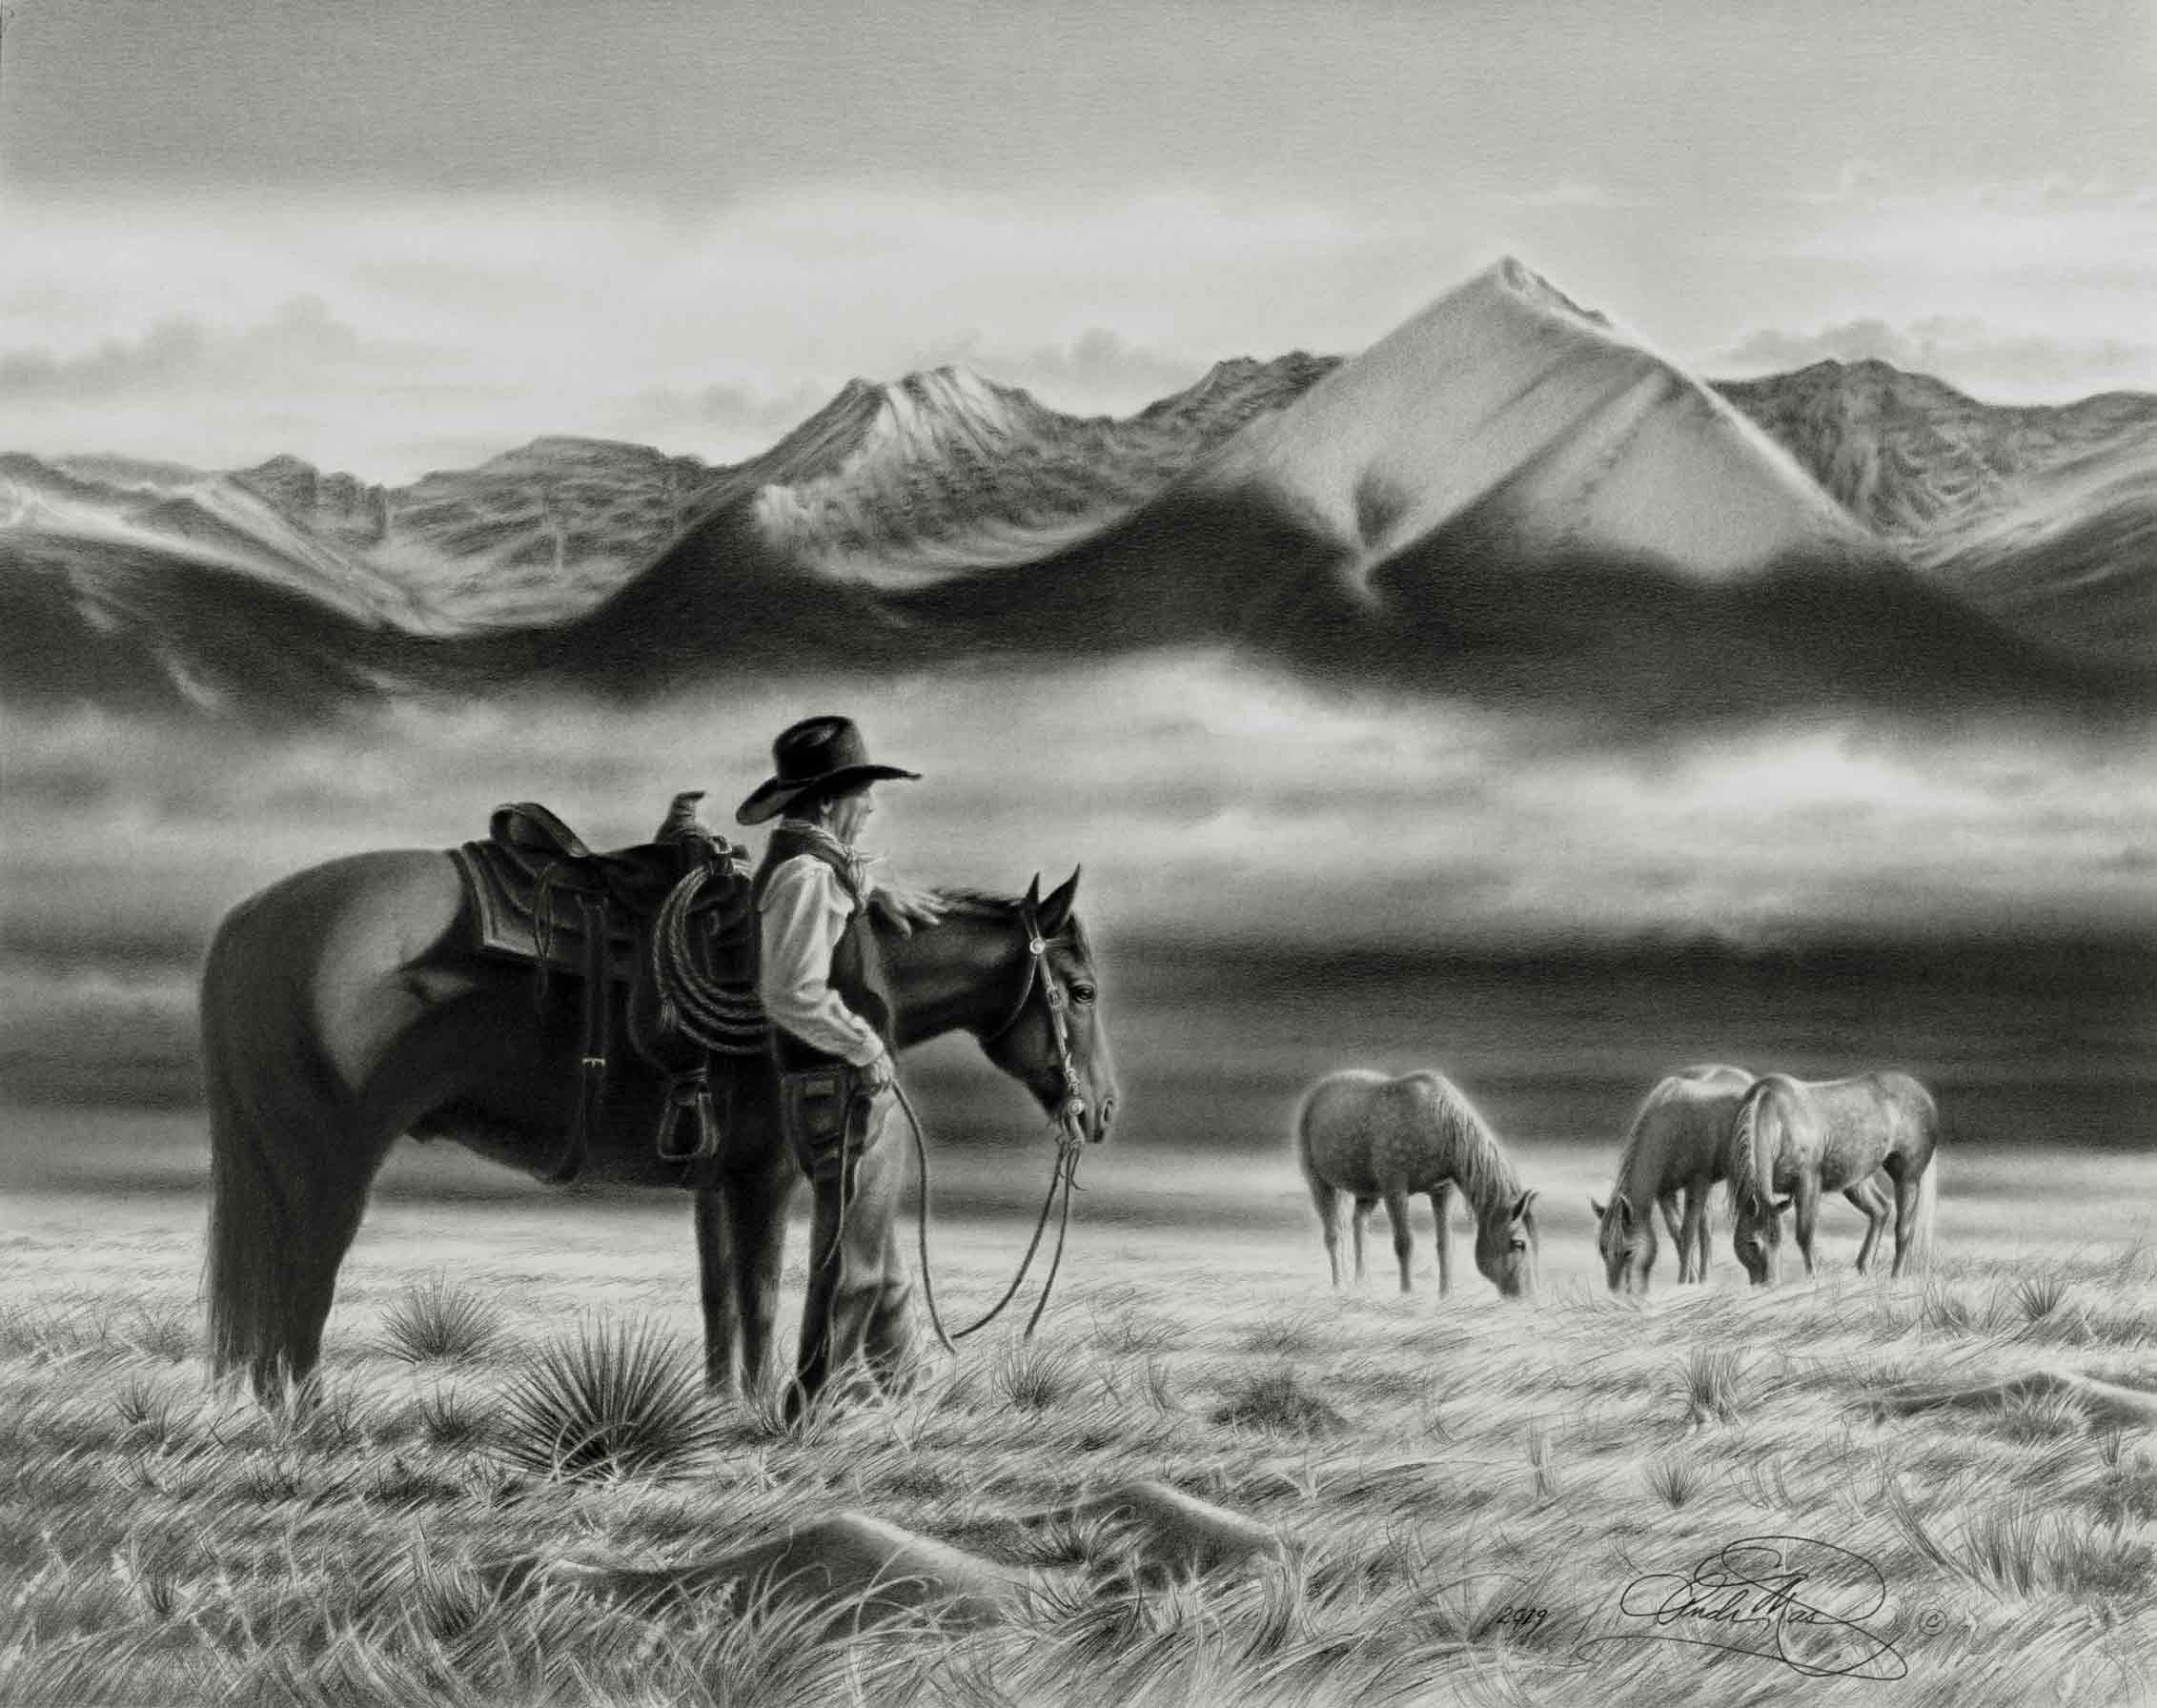 The Wet Mountain Valley's Ranching Heritage